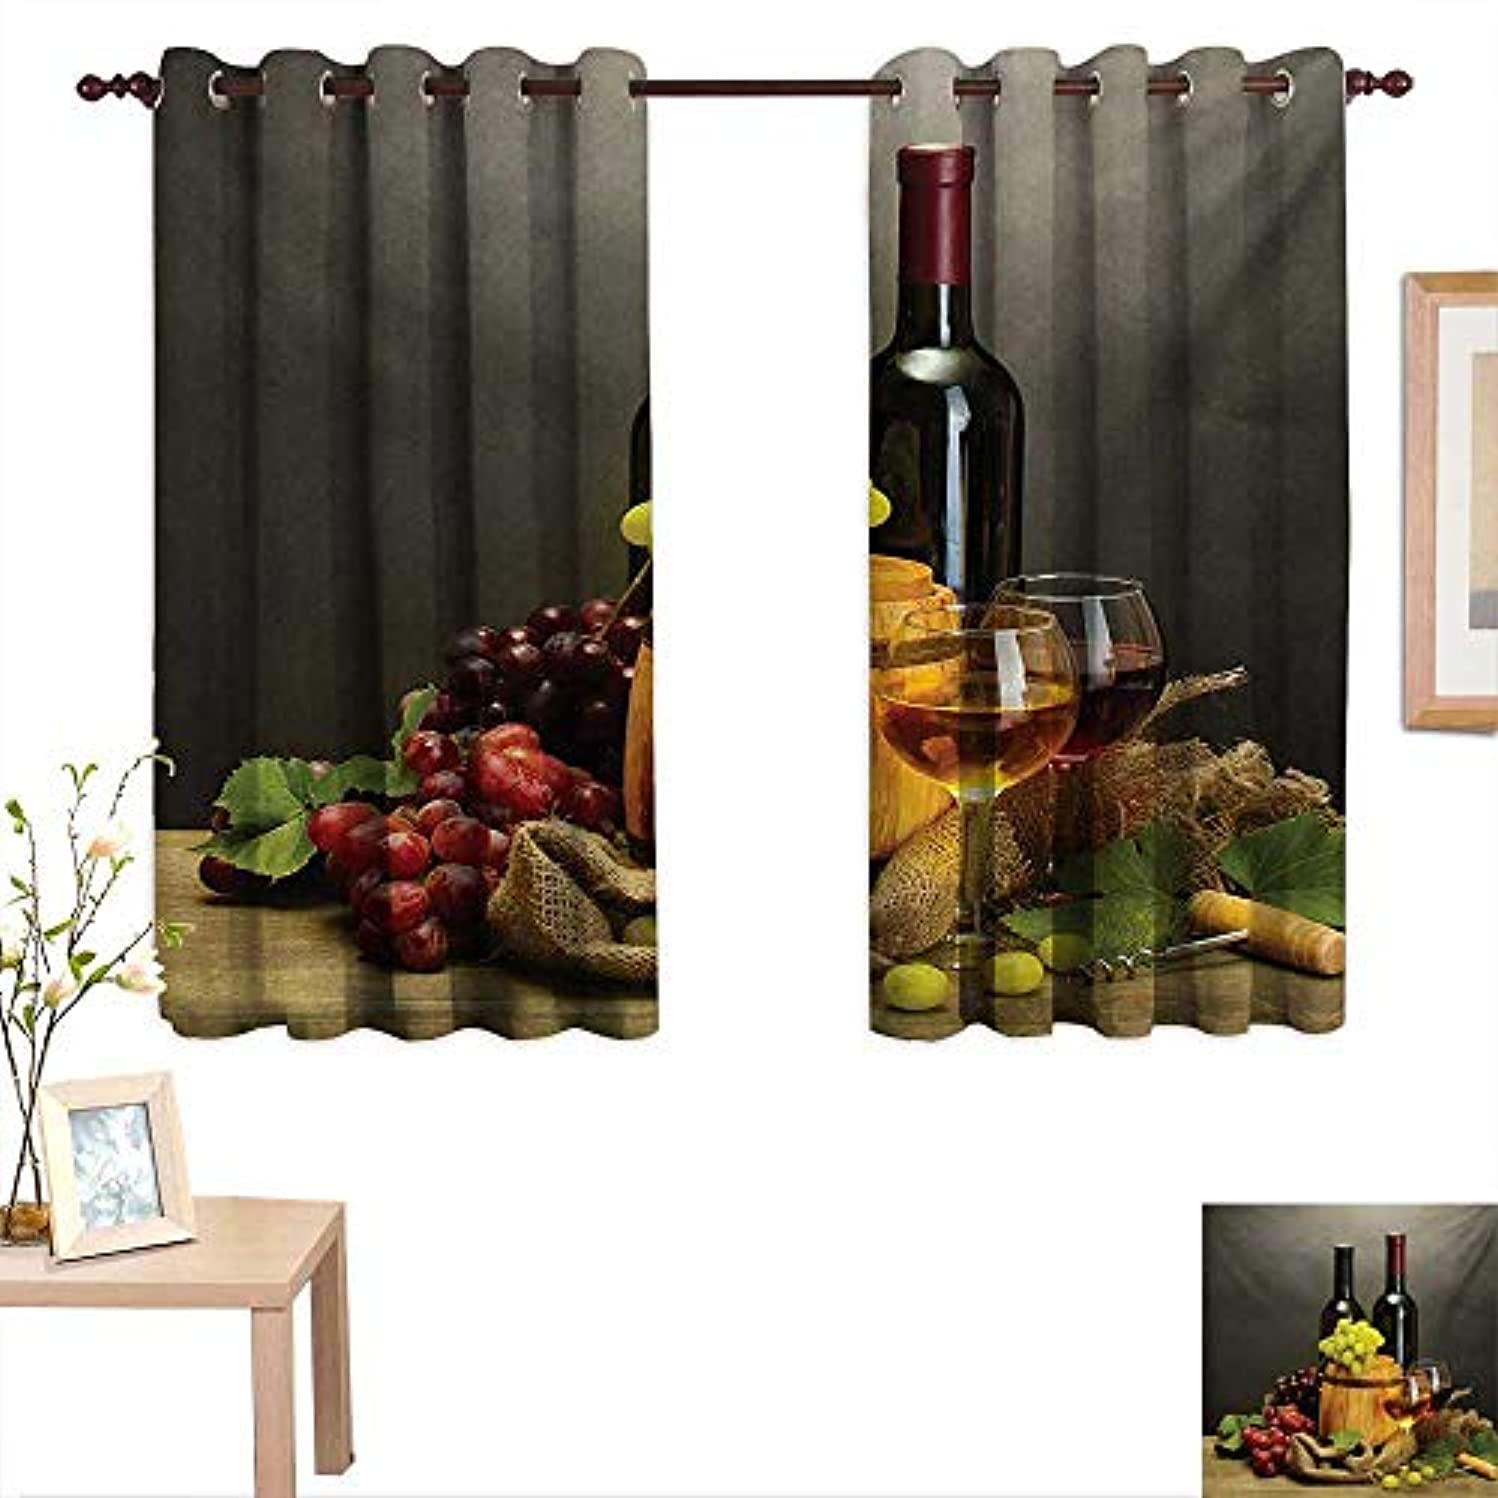 MartinDecor Winery Customized Curtains Barrel Bottles and Glasses of Wine and Ripe Grapes on Wooden Table Picture Print 55